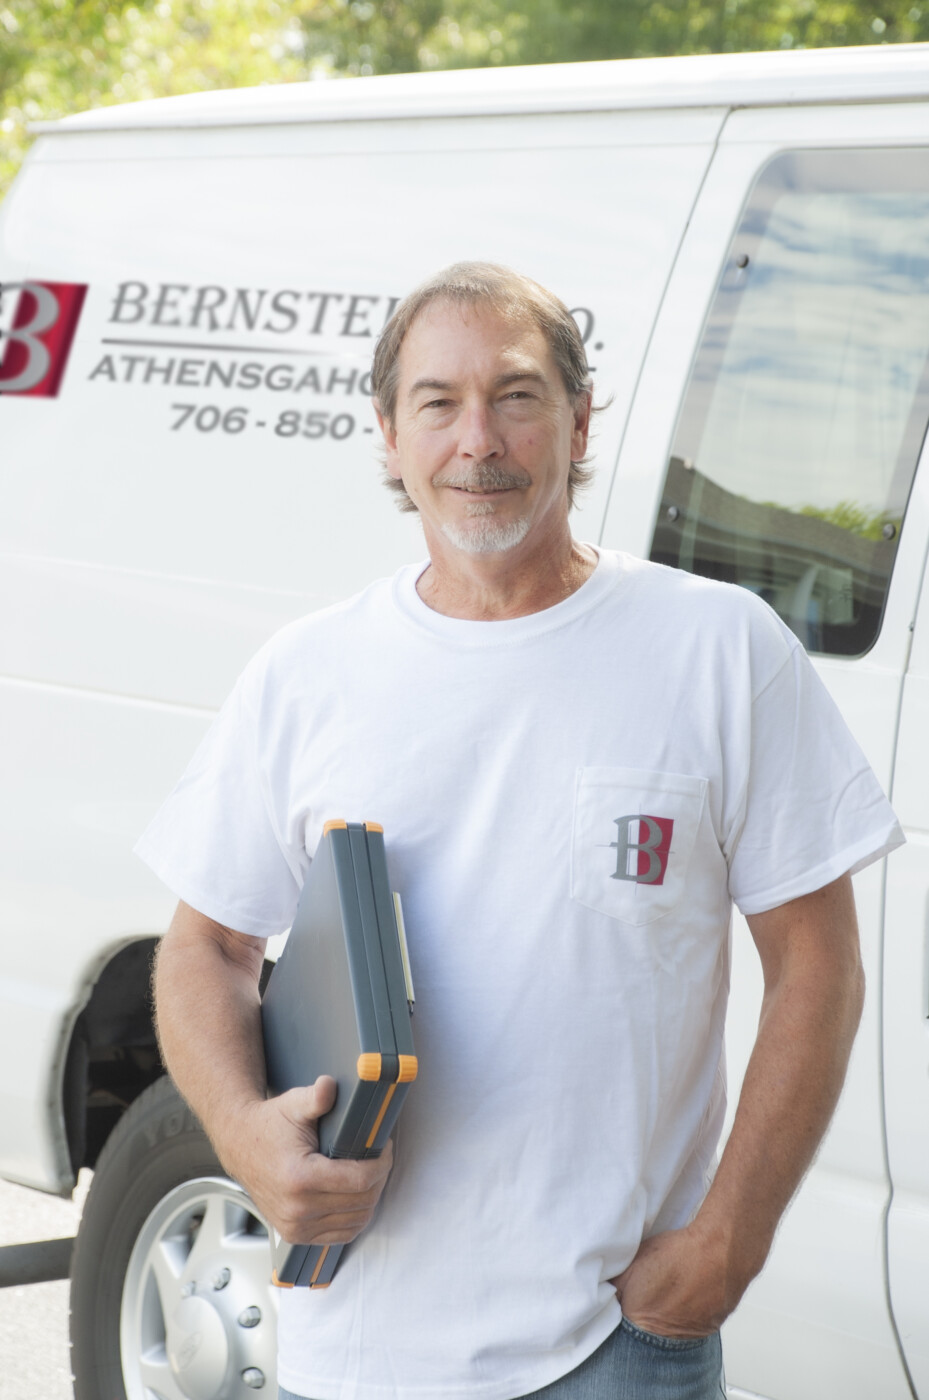 Bruce Moore, Home Improvement Specialist